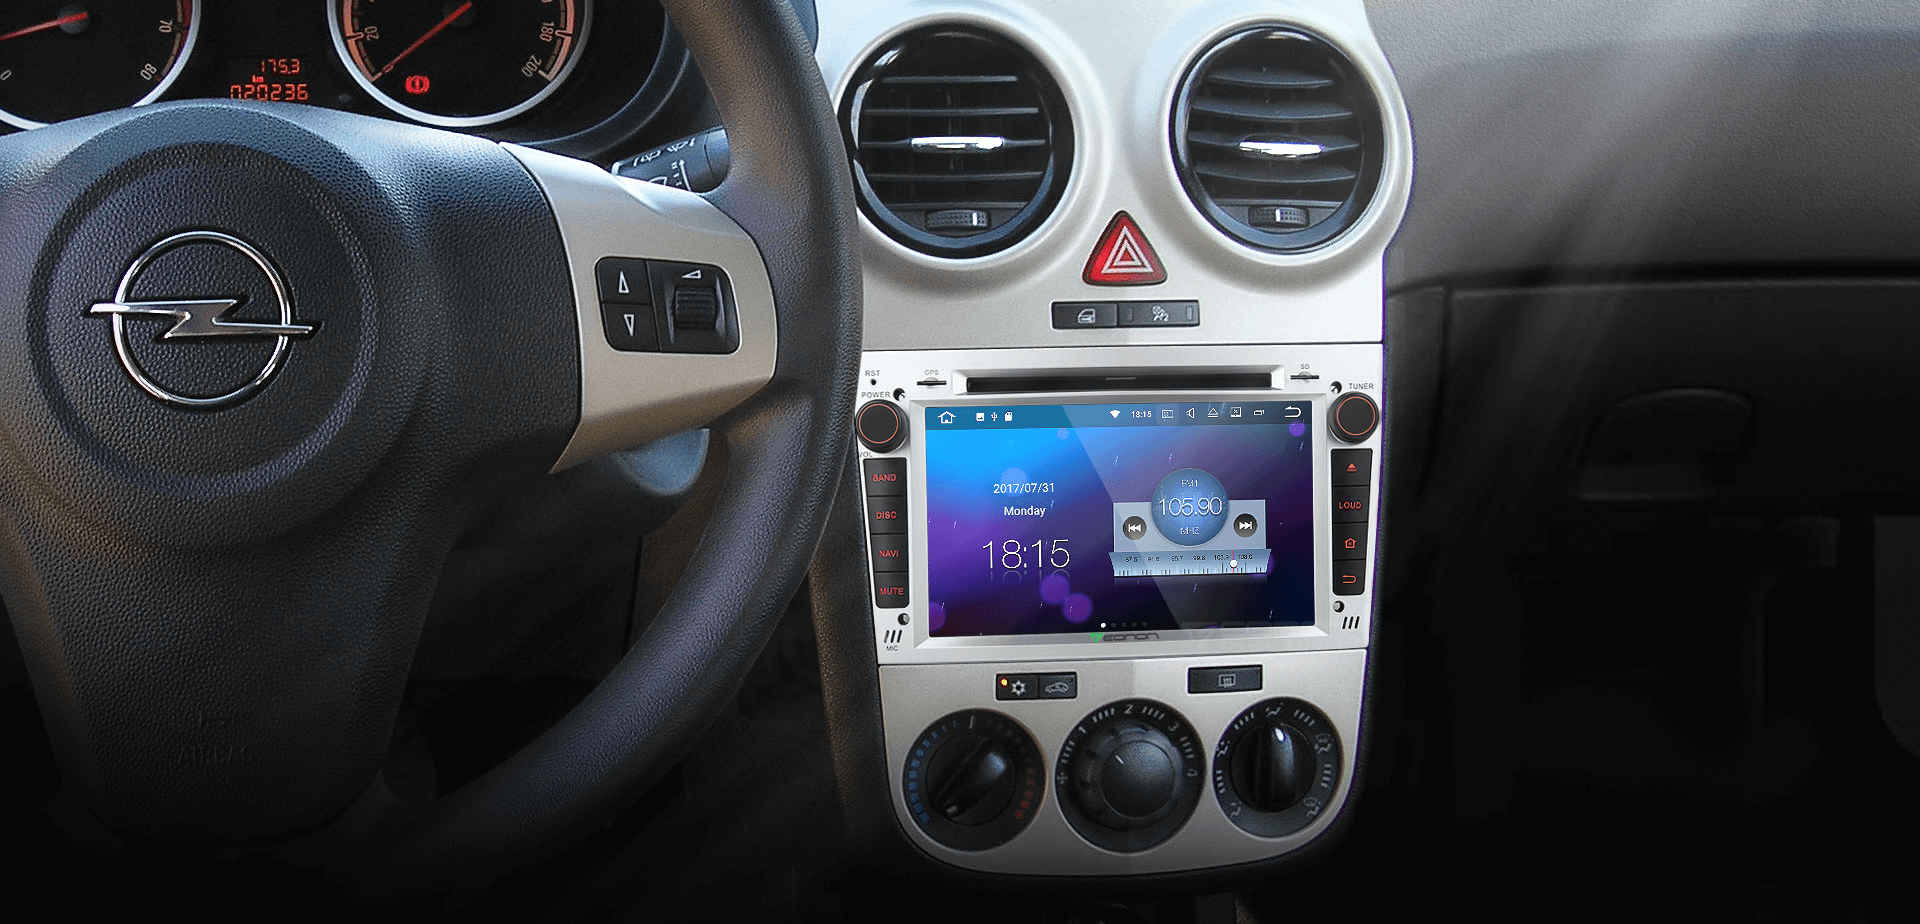 Eonon Ga8155 Opel Vauxhall Holden Android 71 2gb Ram In Car Double Din Wire Diagram Supports Usb Flash Drive Mp3 Player Micro Sd Card With Up To 64gb Of Storage